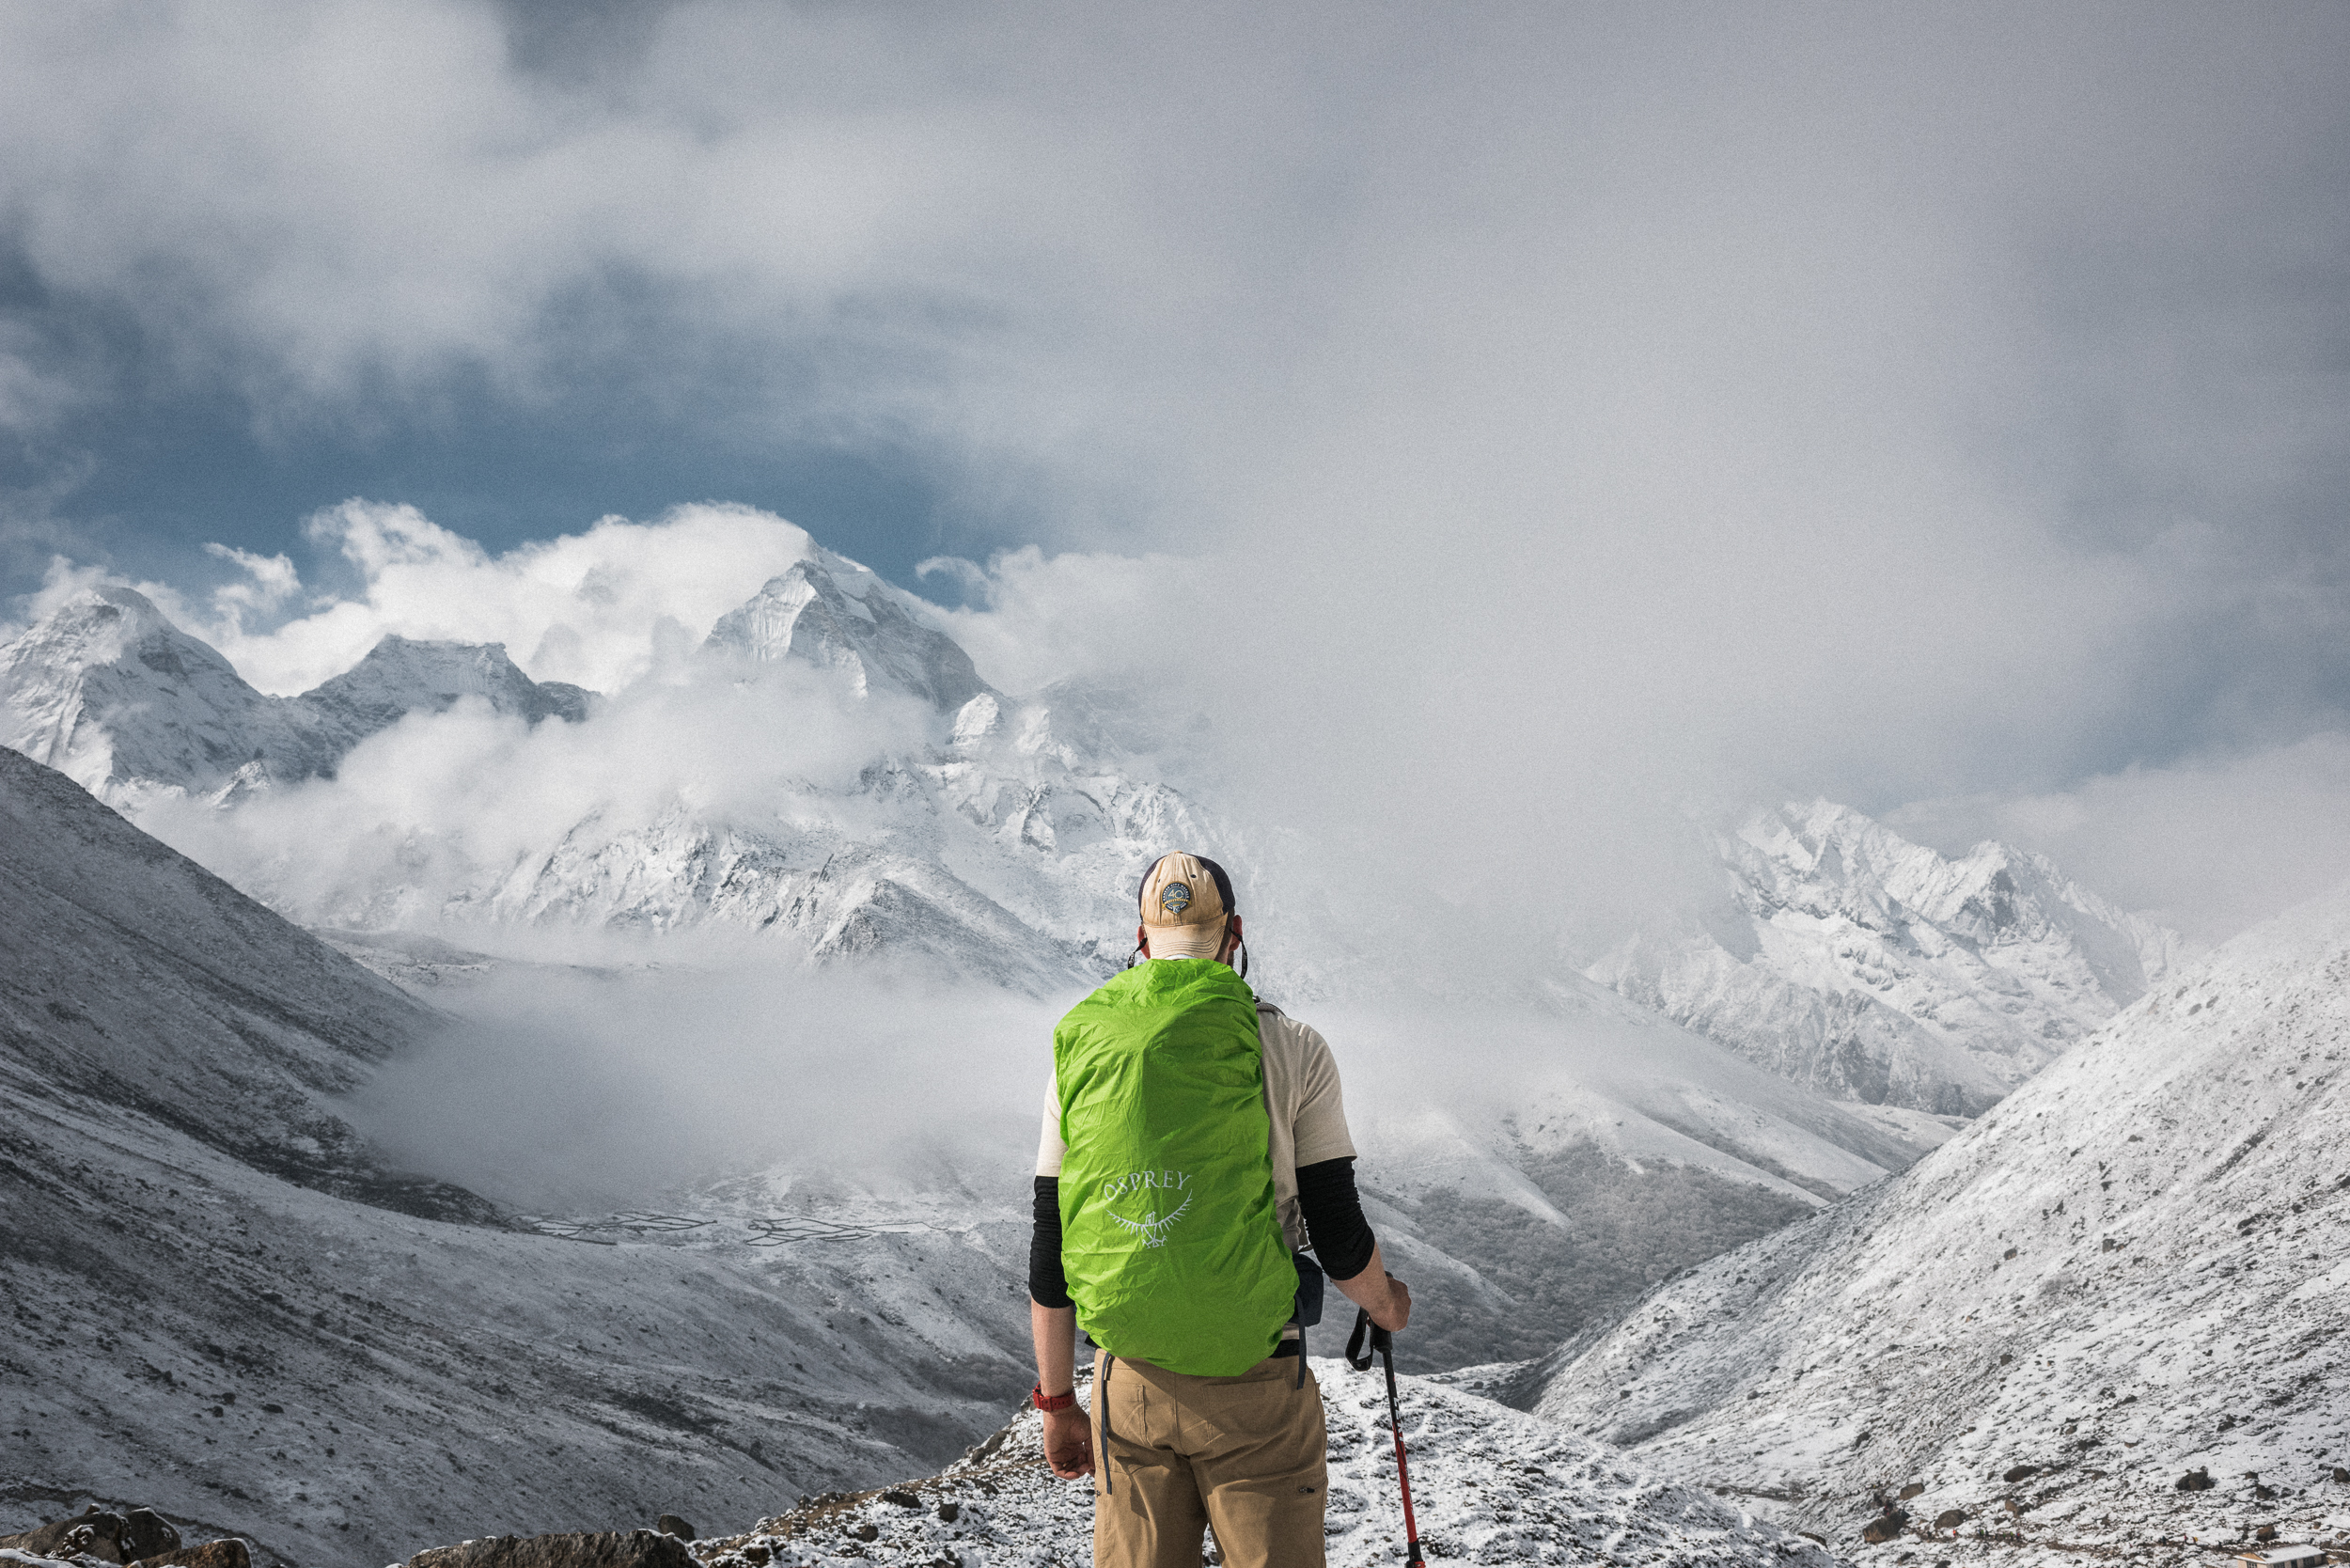 Nepal_EverestBaseCamp_2019_TaraShupe_Photography_DSC_4462.jpg